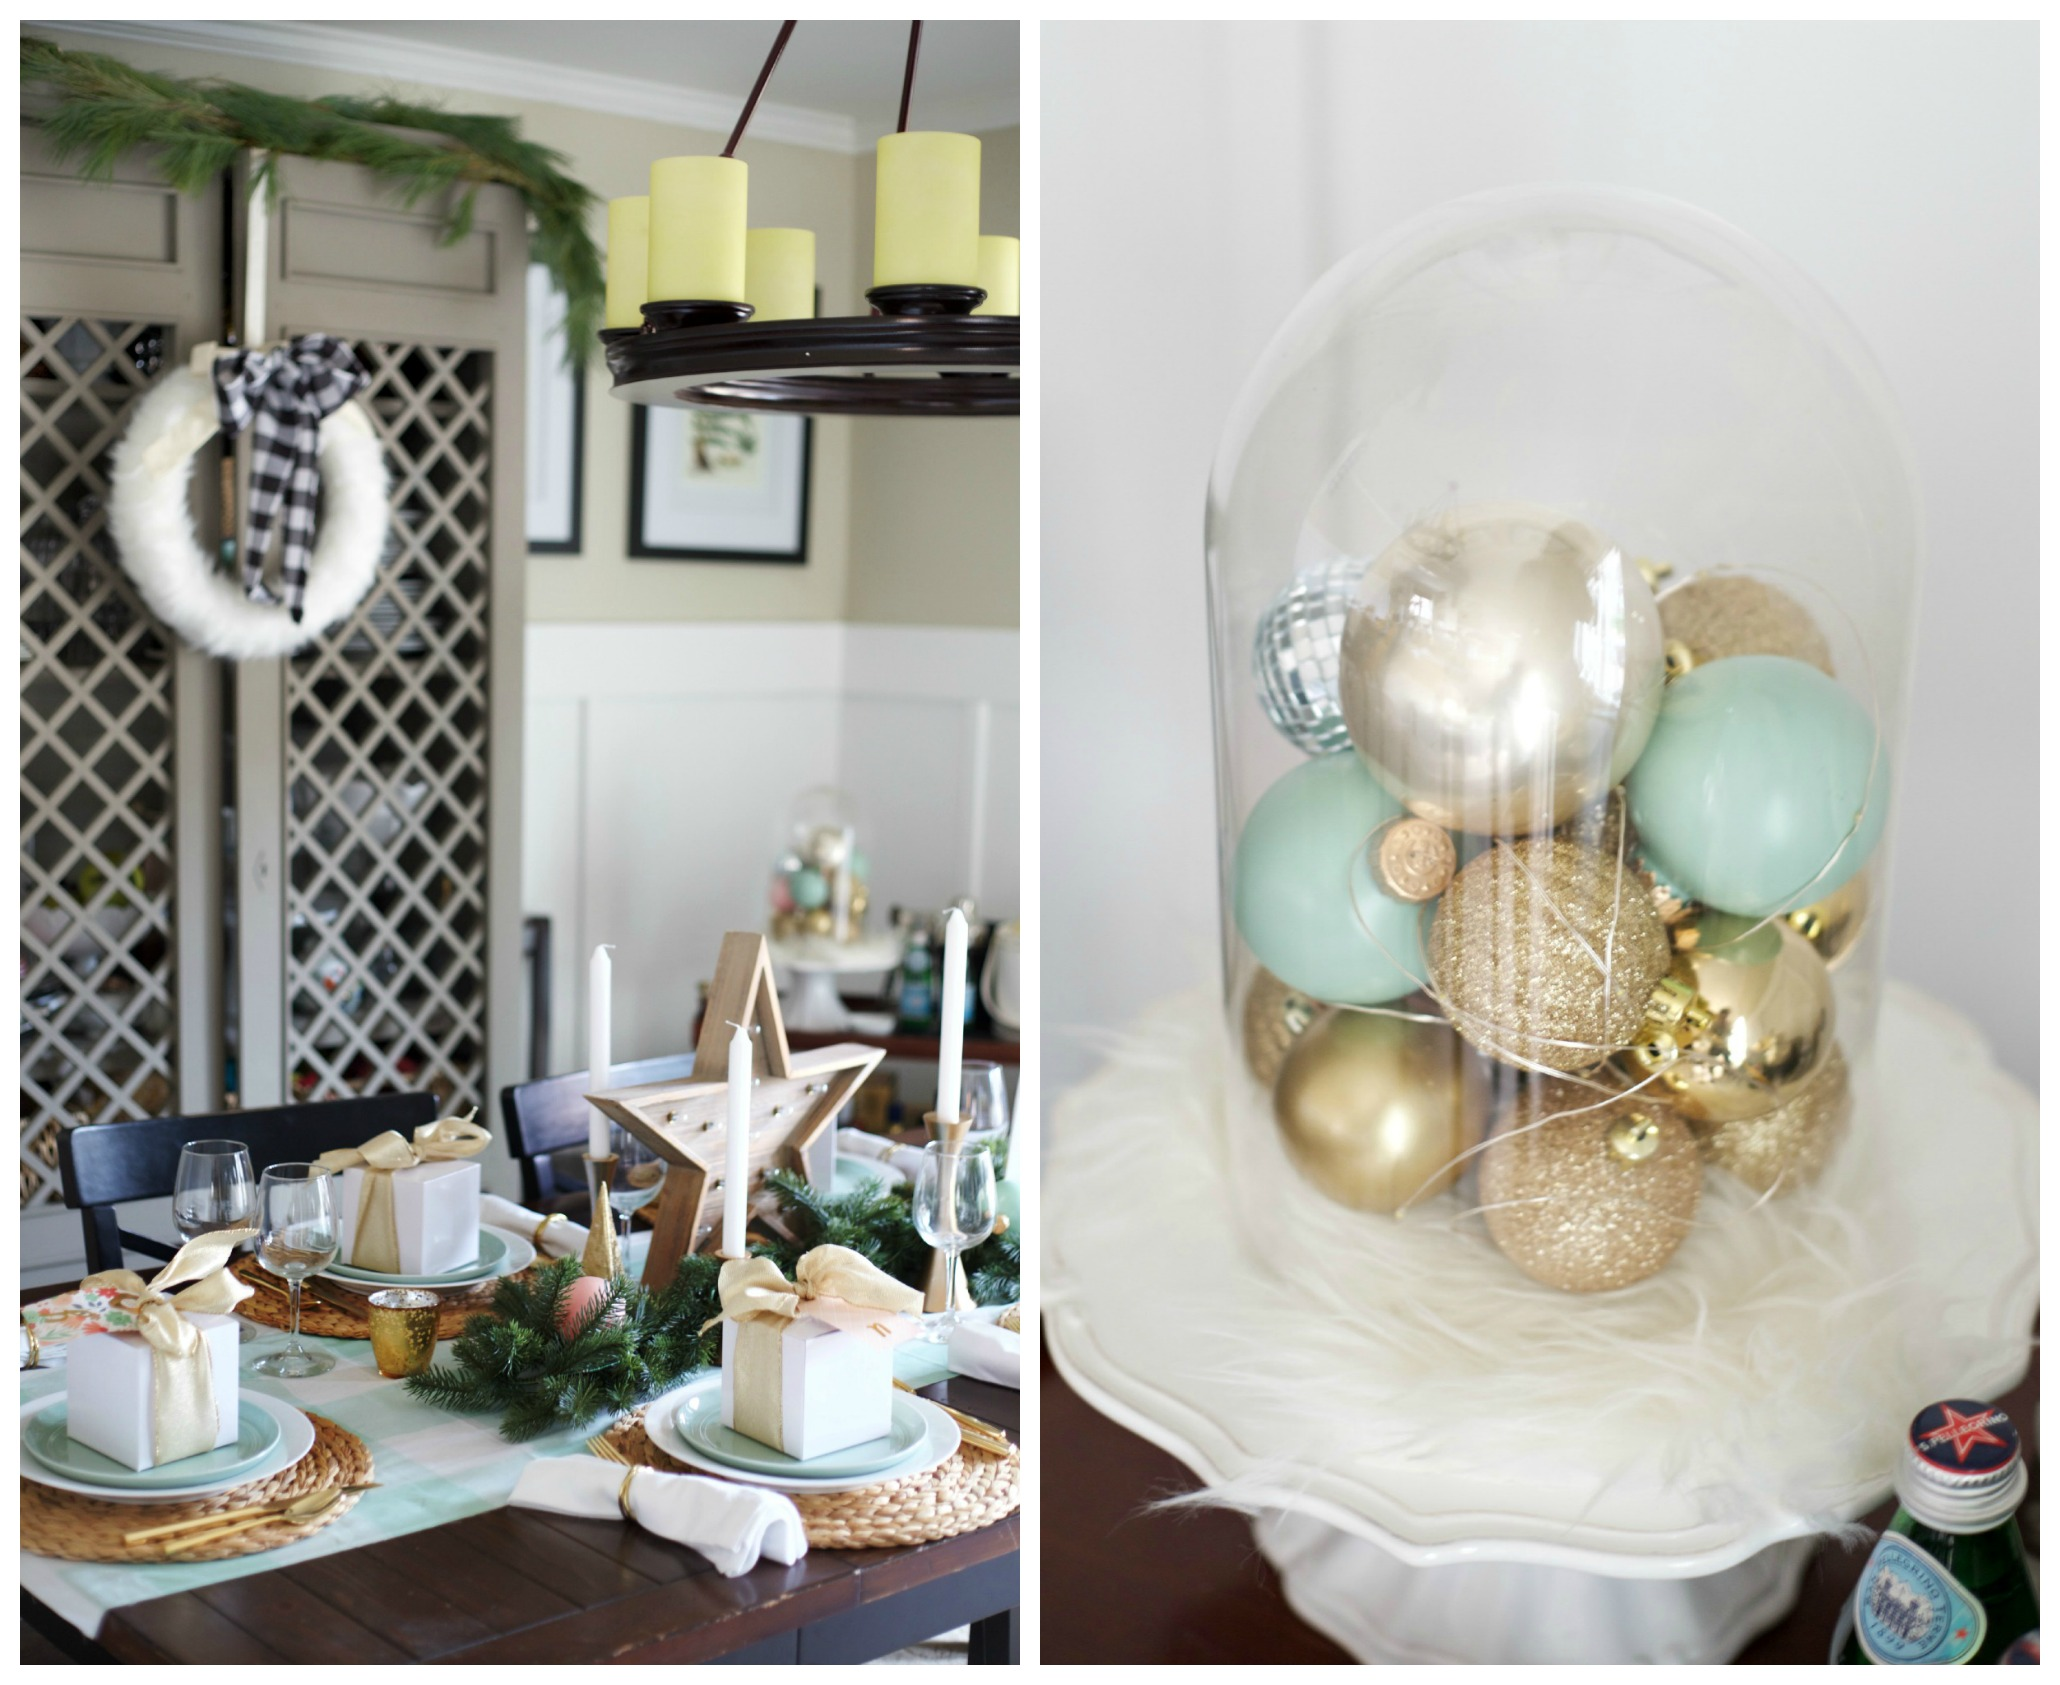 Easy Christmas Decorating Ideas | PartiesforPennies.com | Budget Friendly | Dining Room | Ornament Decoration Idea